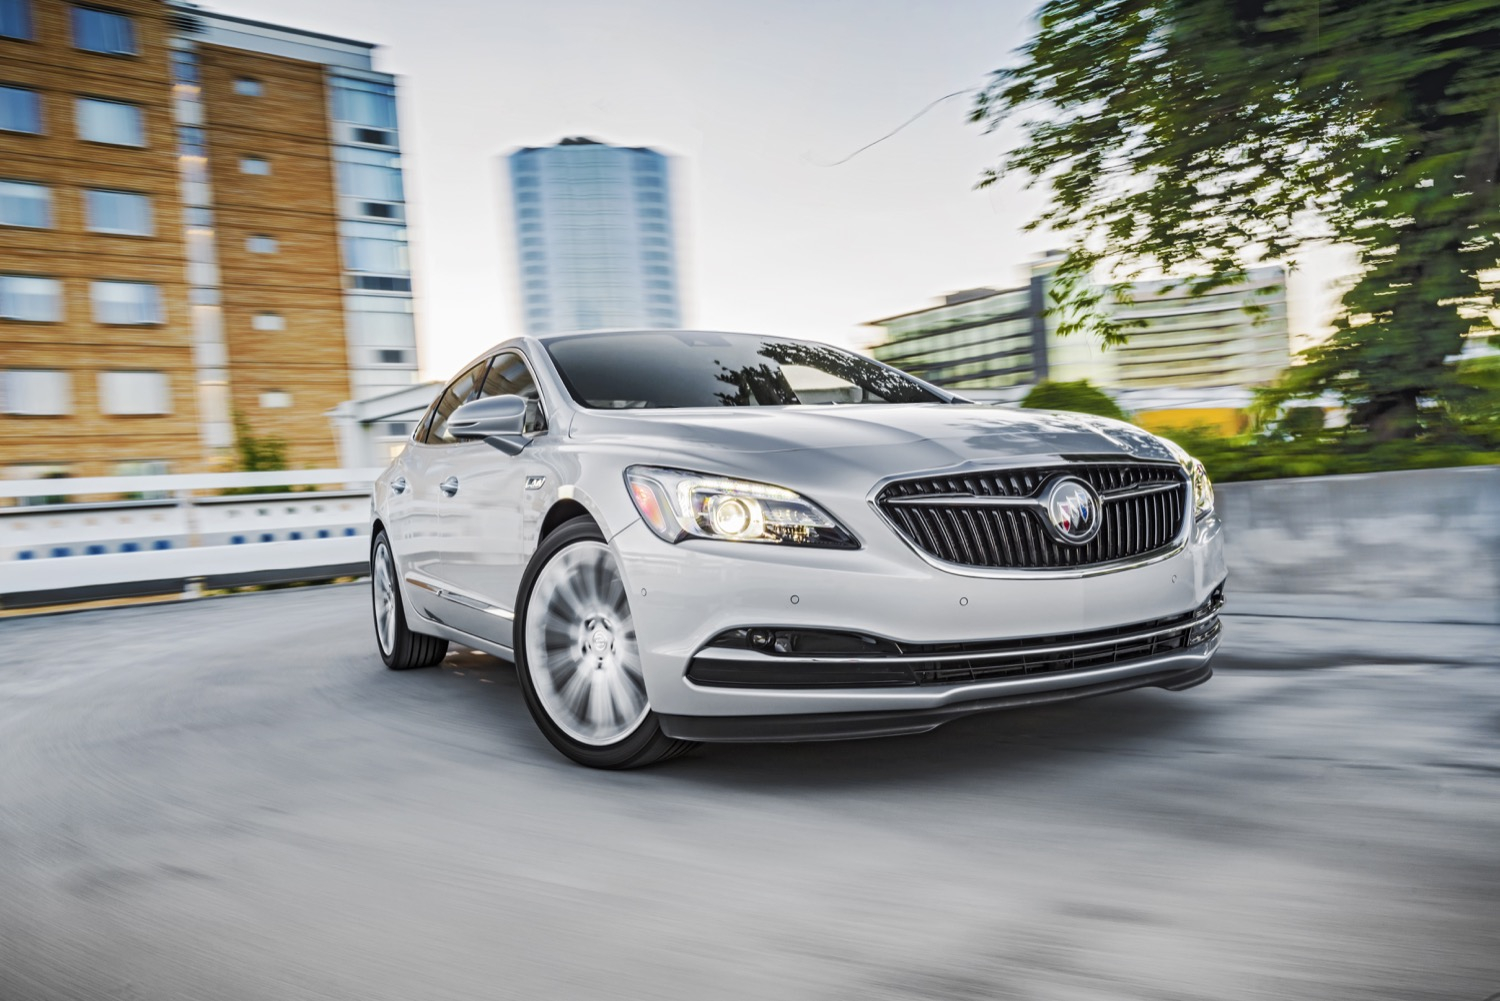 Buick Lacrosse Discount Totals $9,000 February 2020 | Gm 2022 Buick Lacrosse Lease, Reviews, Msrp